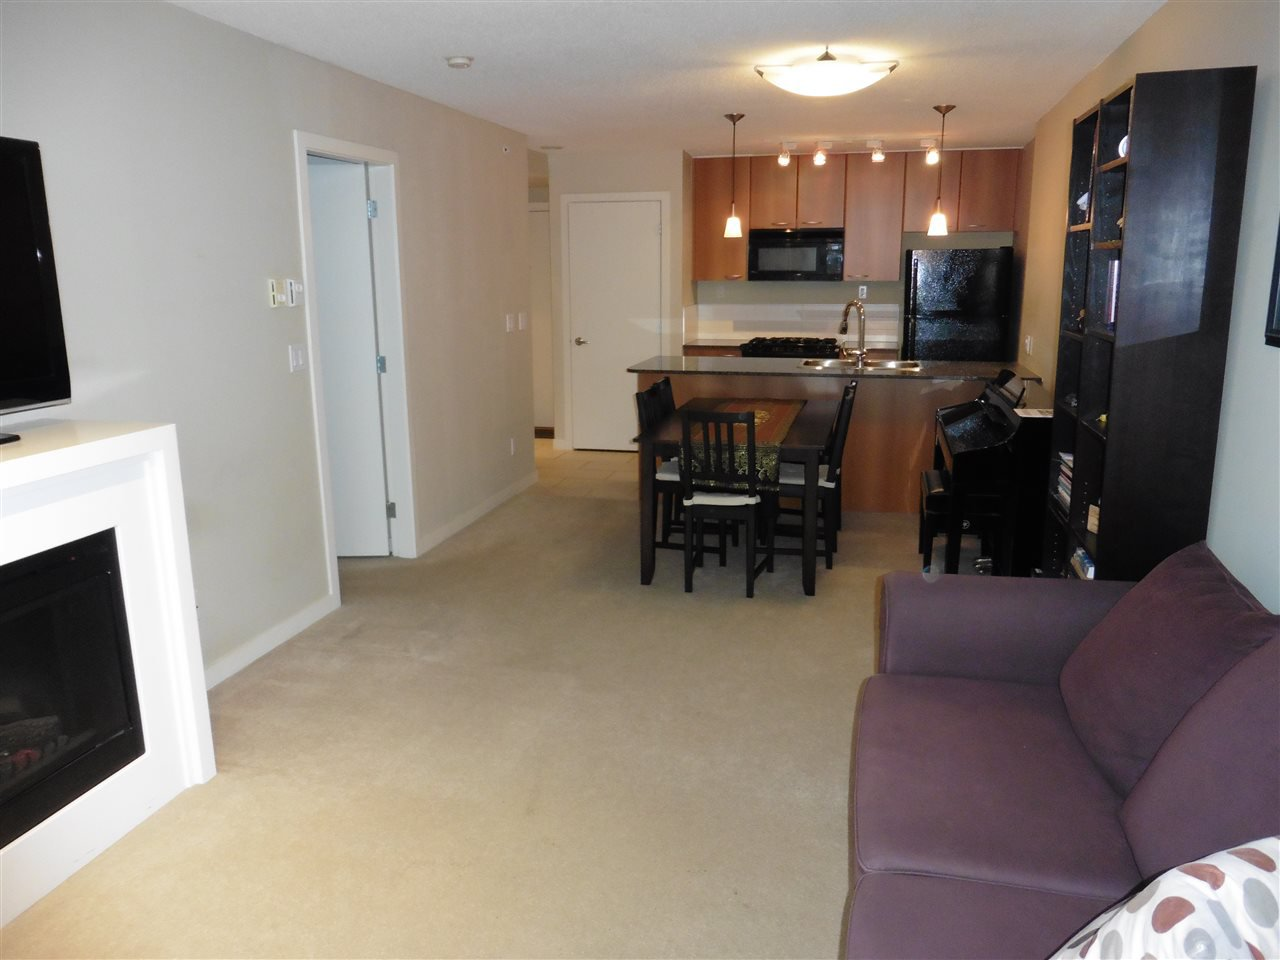 """Photo 2: Photos: 1101 7108 COLLIER Street in Burnaby: Highgate Condo for sale in """"ARCADIA WEST"""" (Burnaby South)  : MLS®# R2317674"""